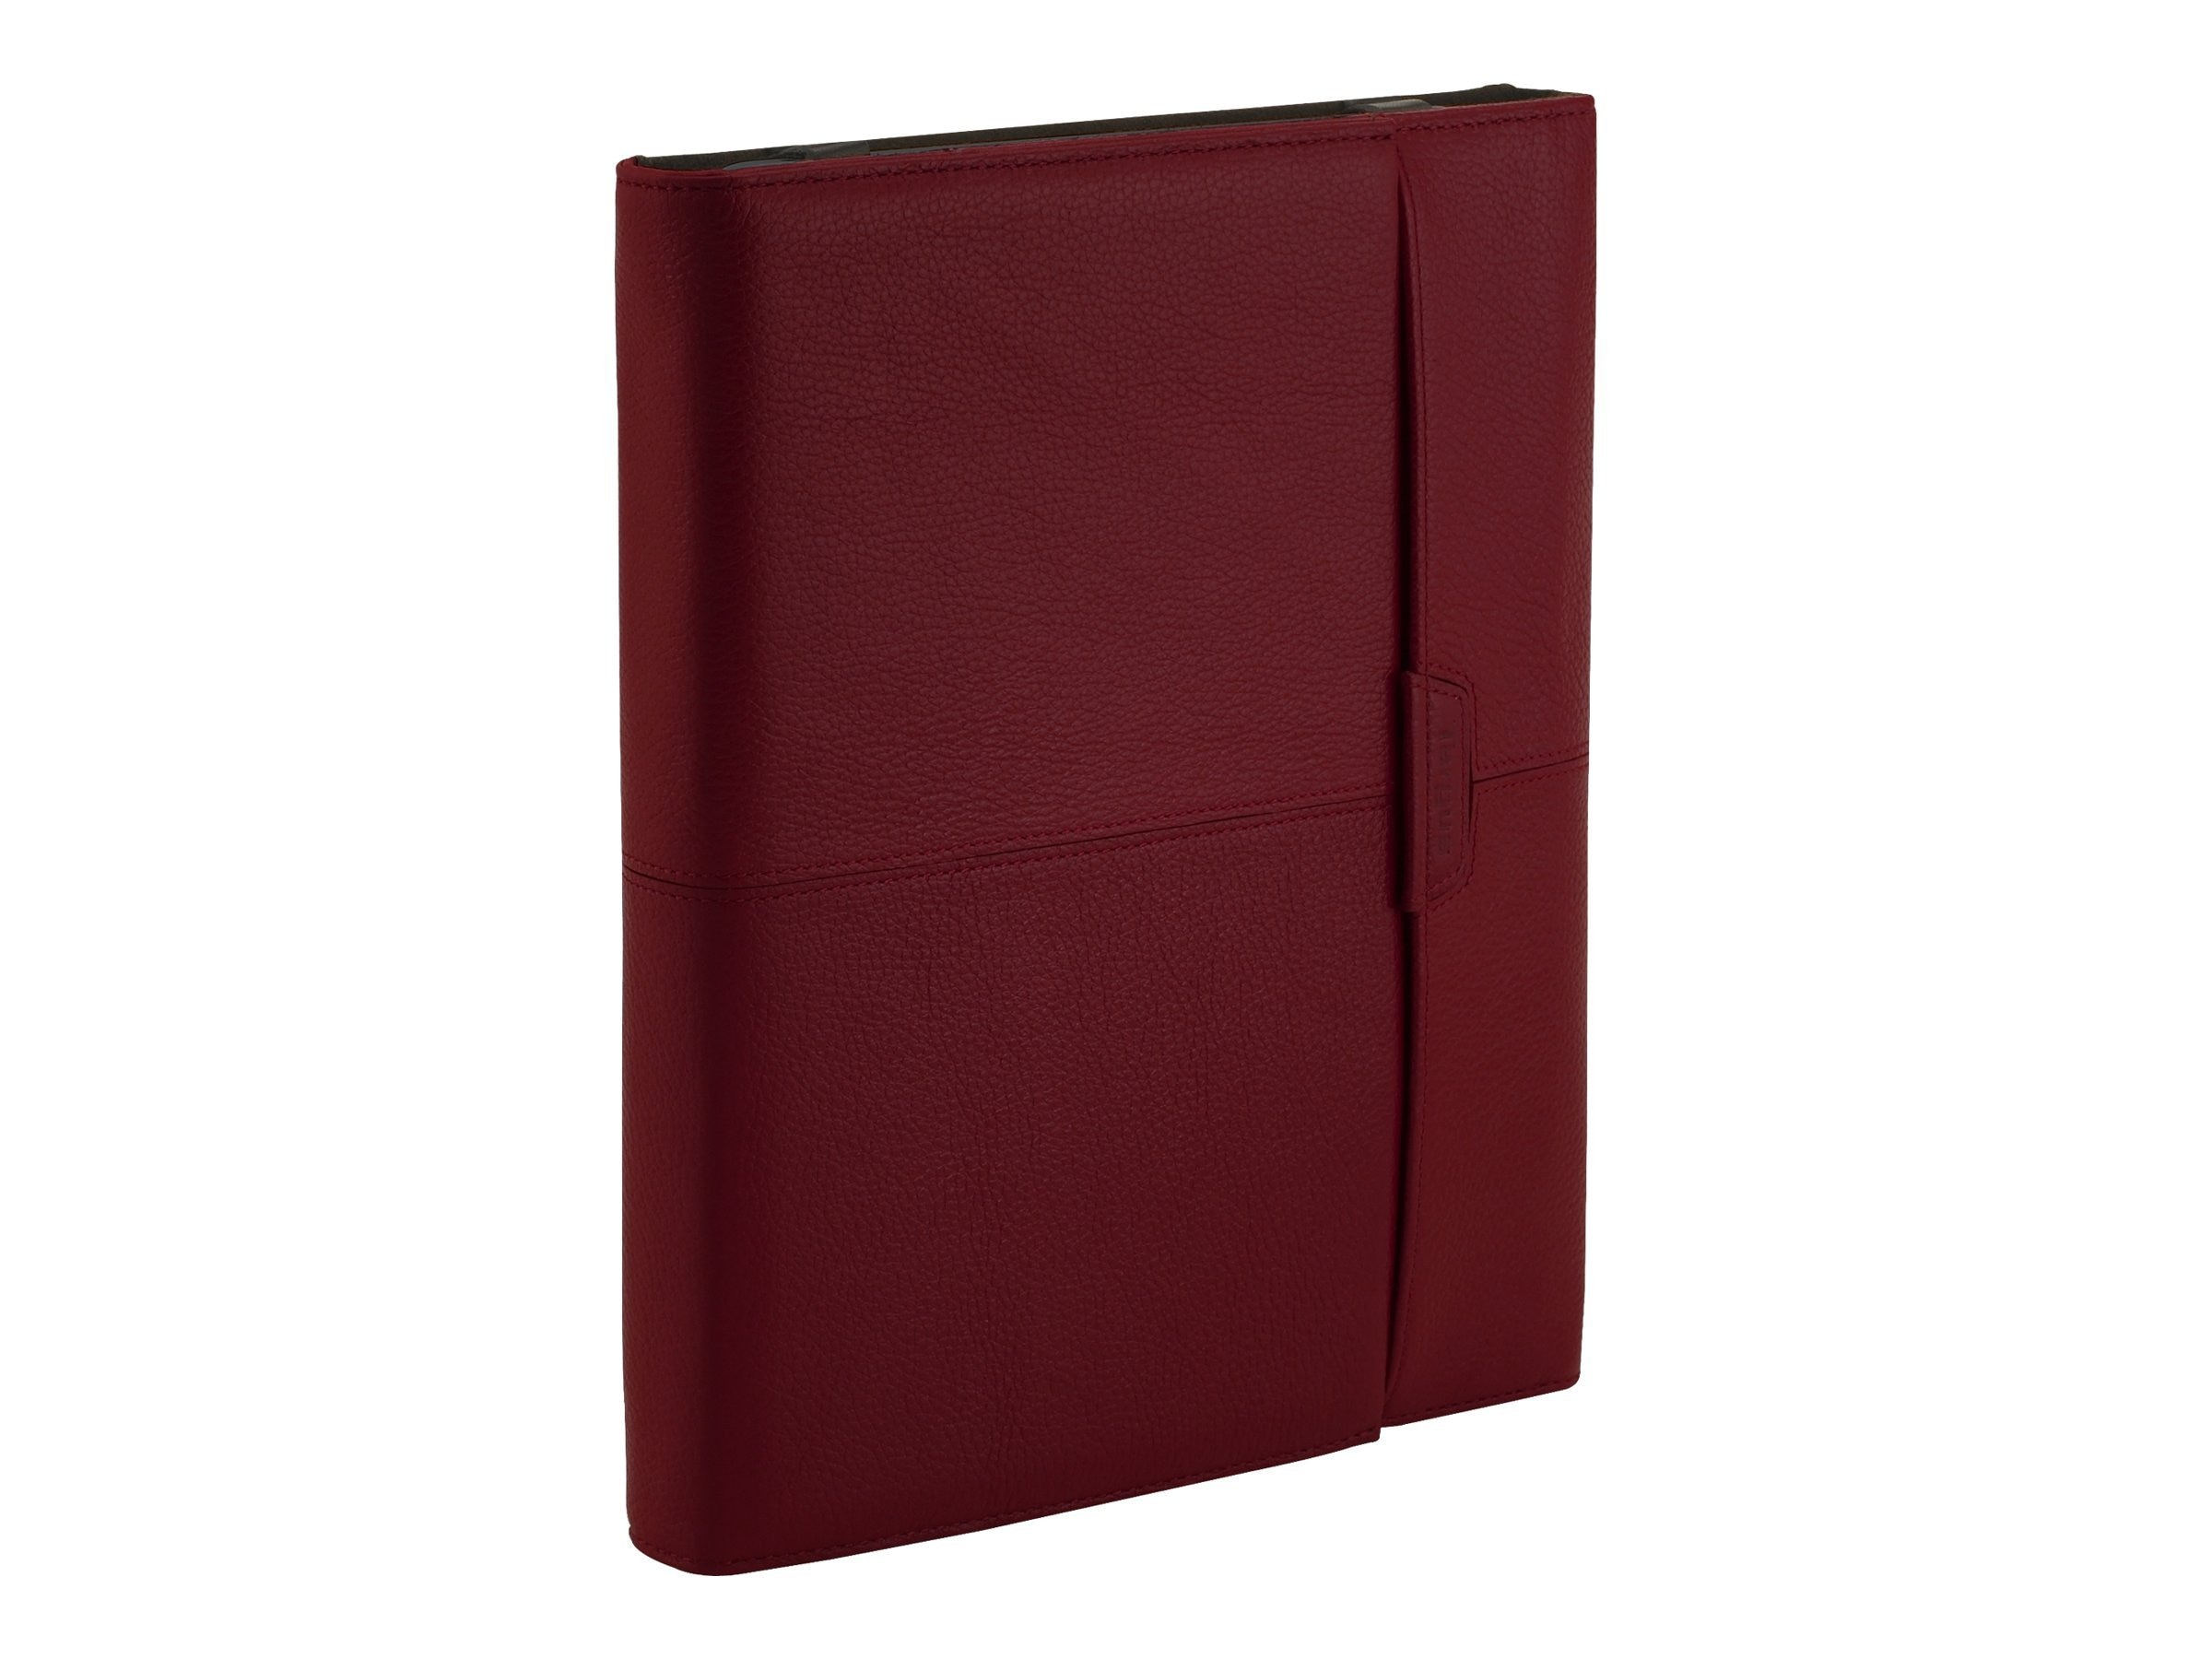 Targus Zierra Leather Portfolio for Kindle 3, Red, THZ03202US, 12599698, Protective & Dust Covers